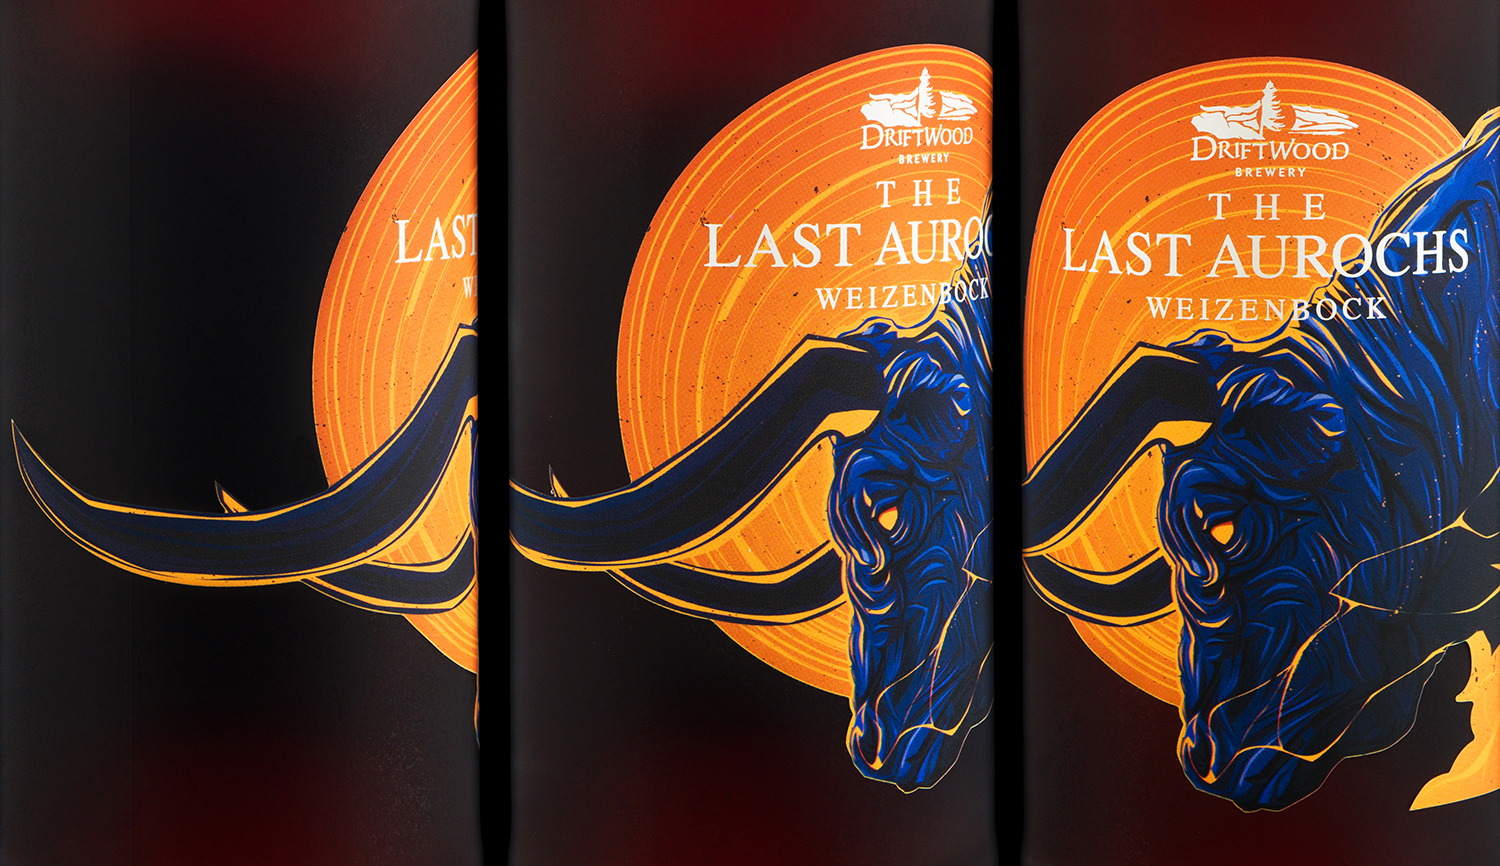 Packaging Design for Driftwood Brewery's Last Aurochs Weizenbock